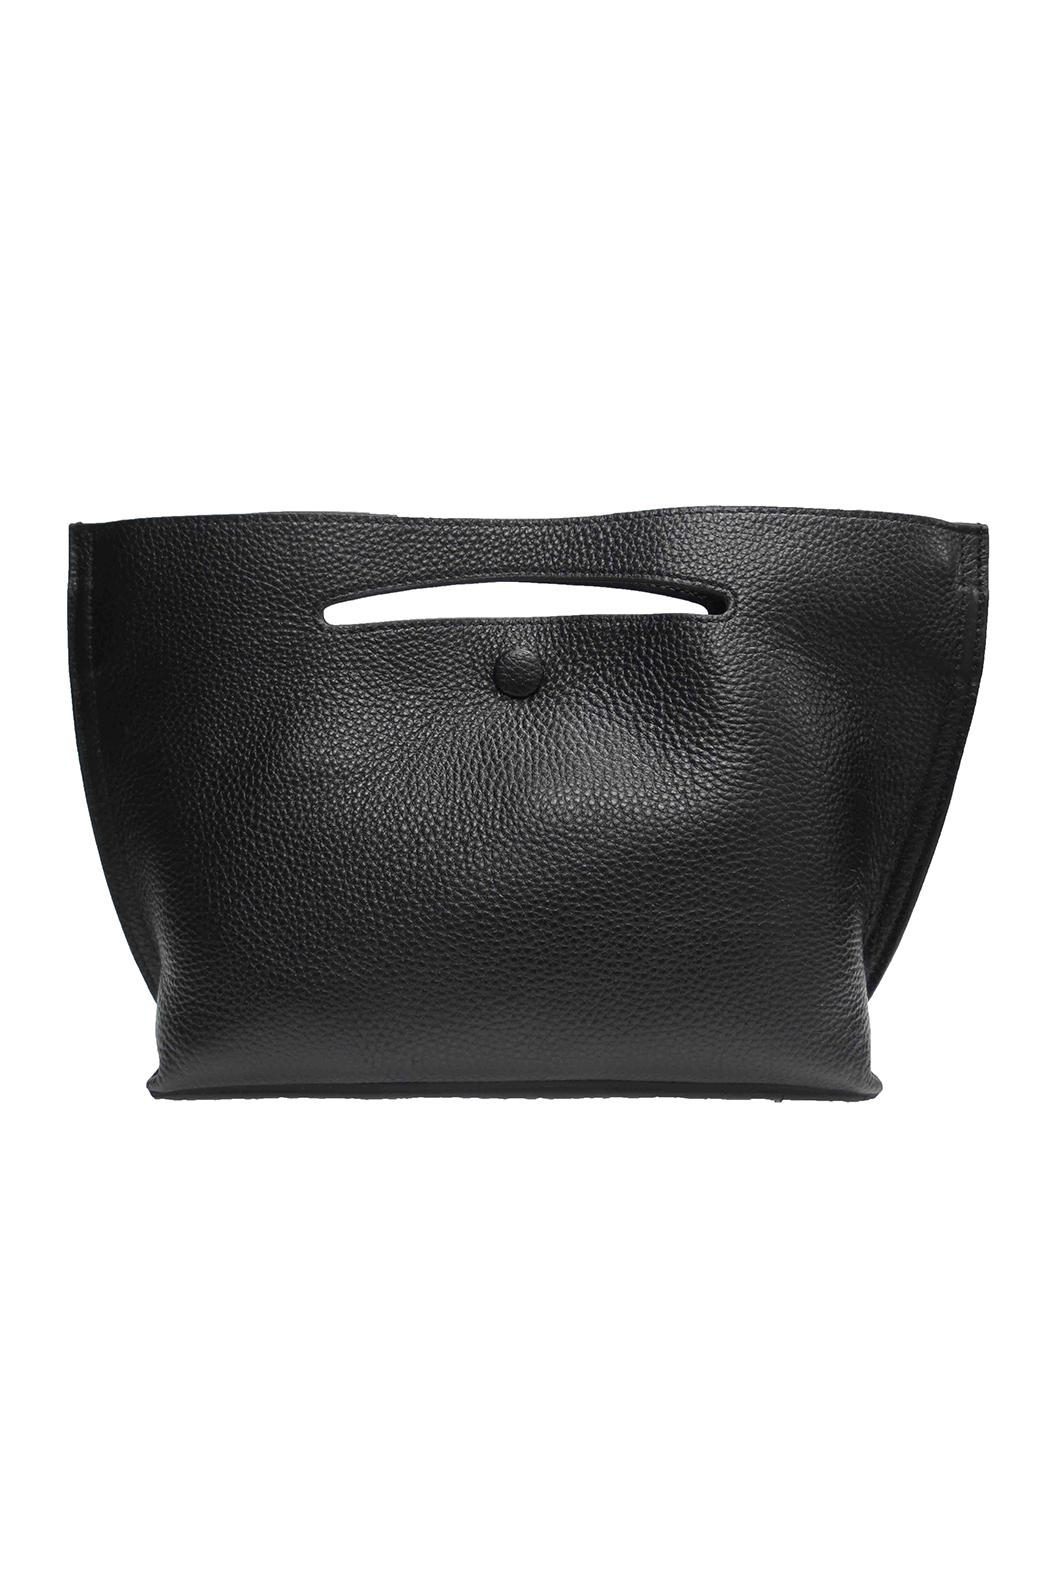 Sondra Roberts City-Chic Small Tote - Front Cropped Image